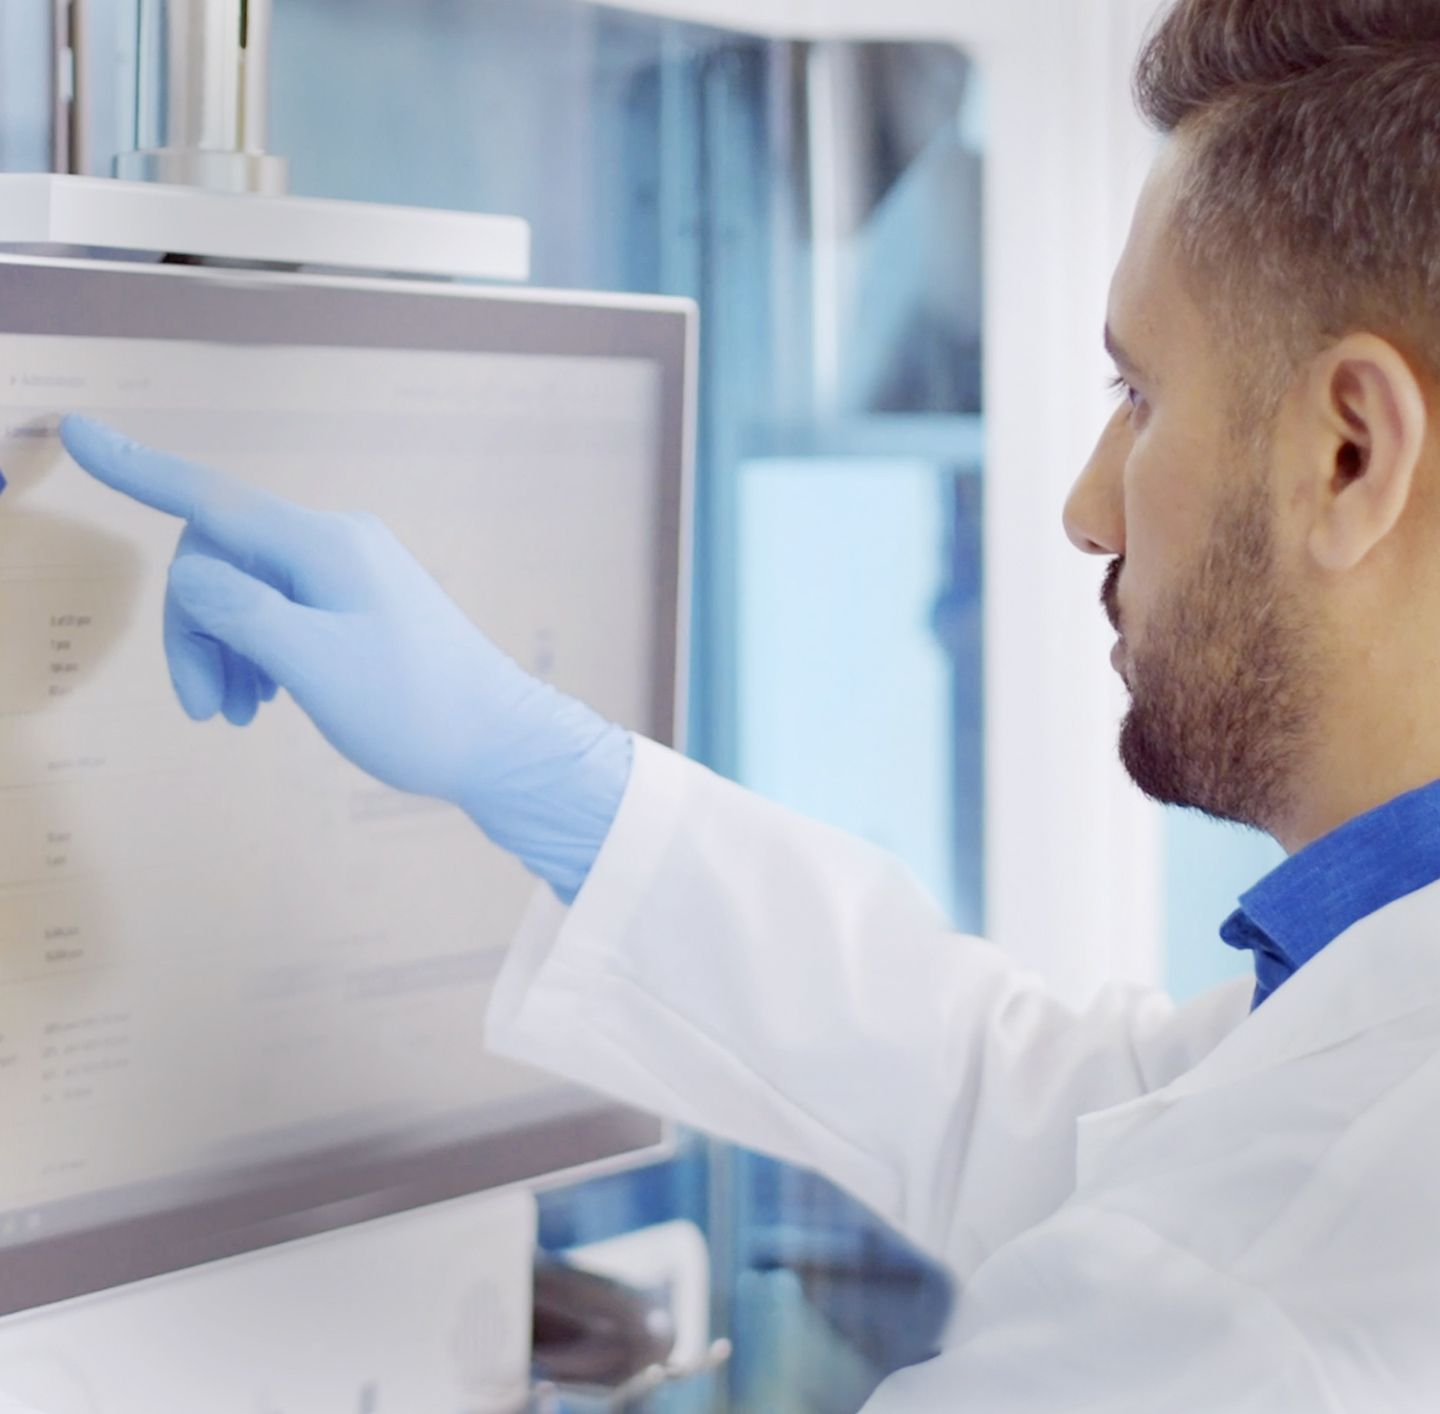 Lab technician touching monitor, integration image